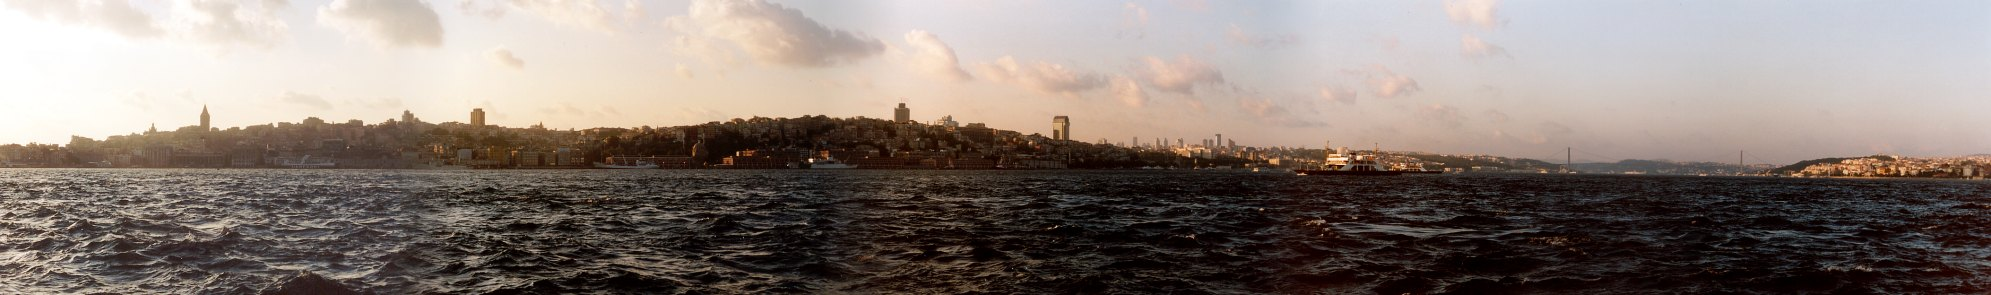 Spaziergang durch Istanbul (18): Skyline-Panorama